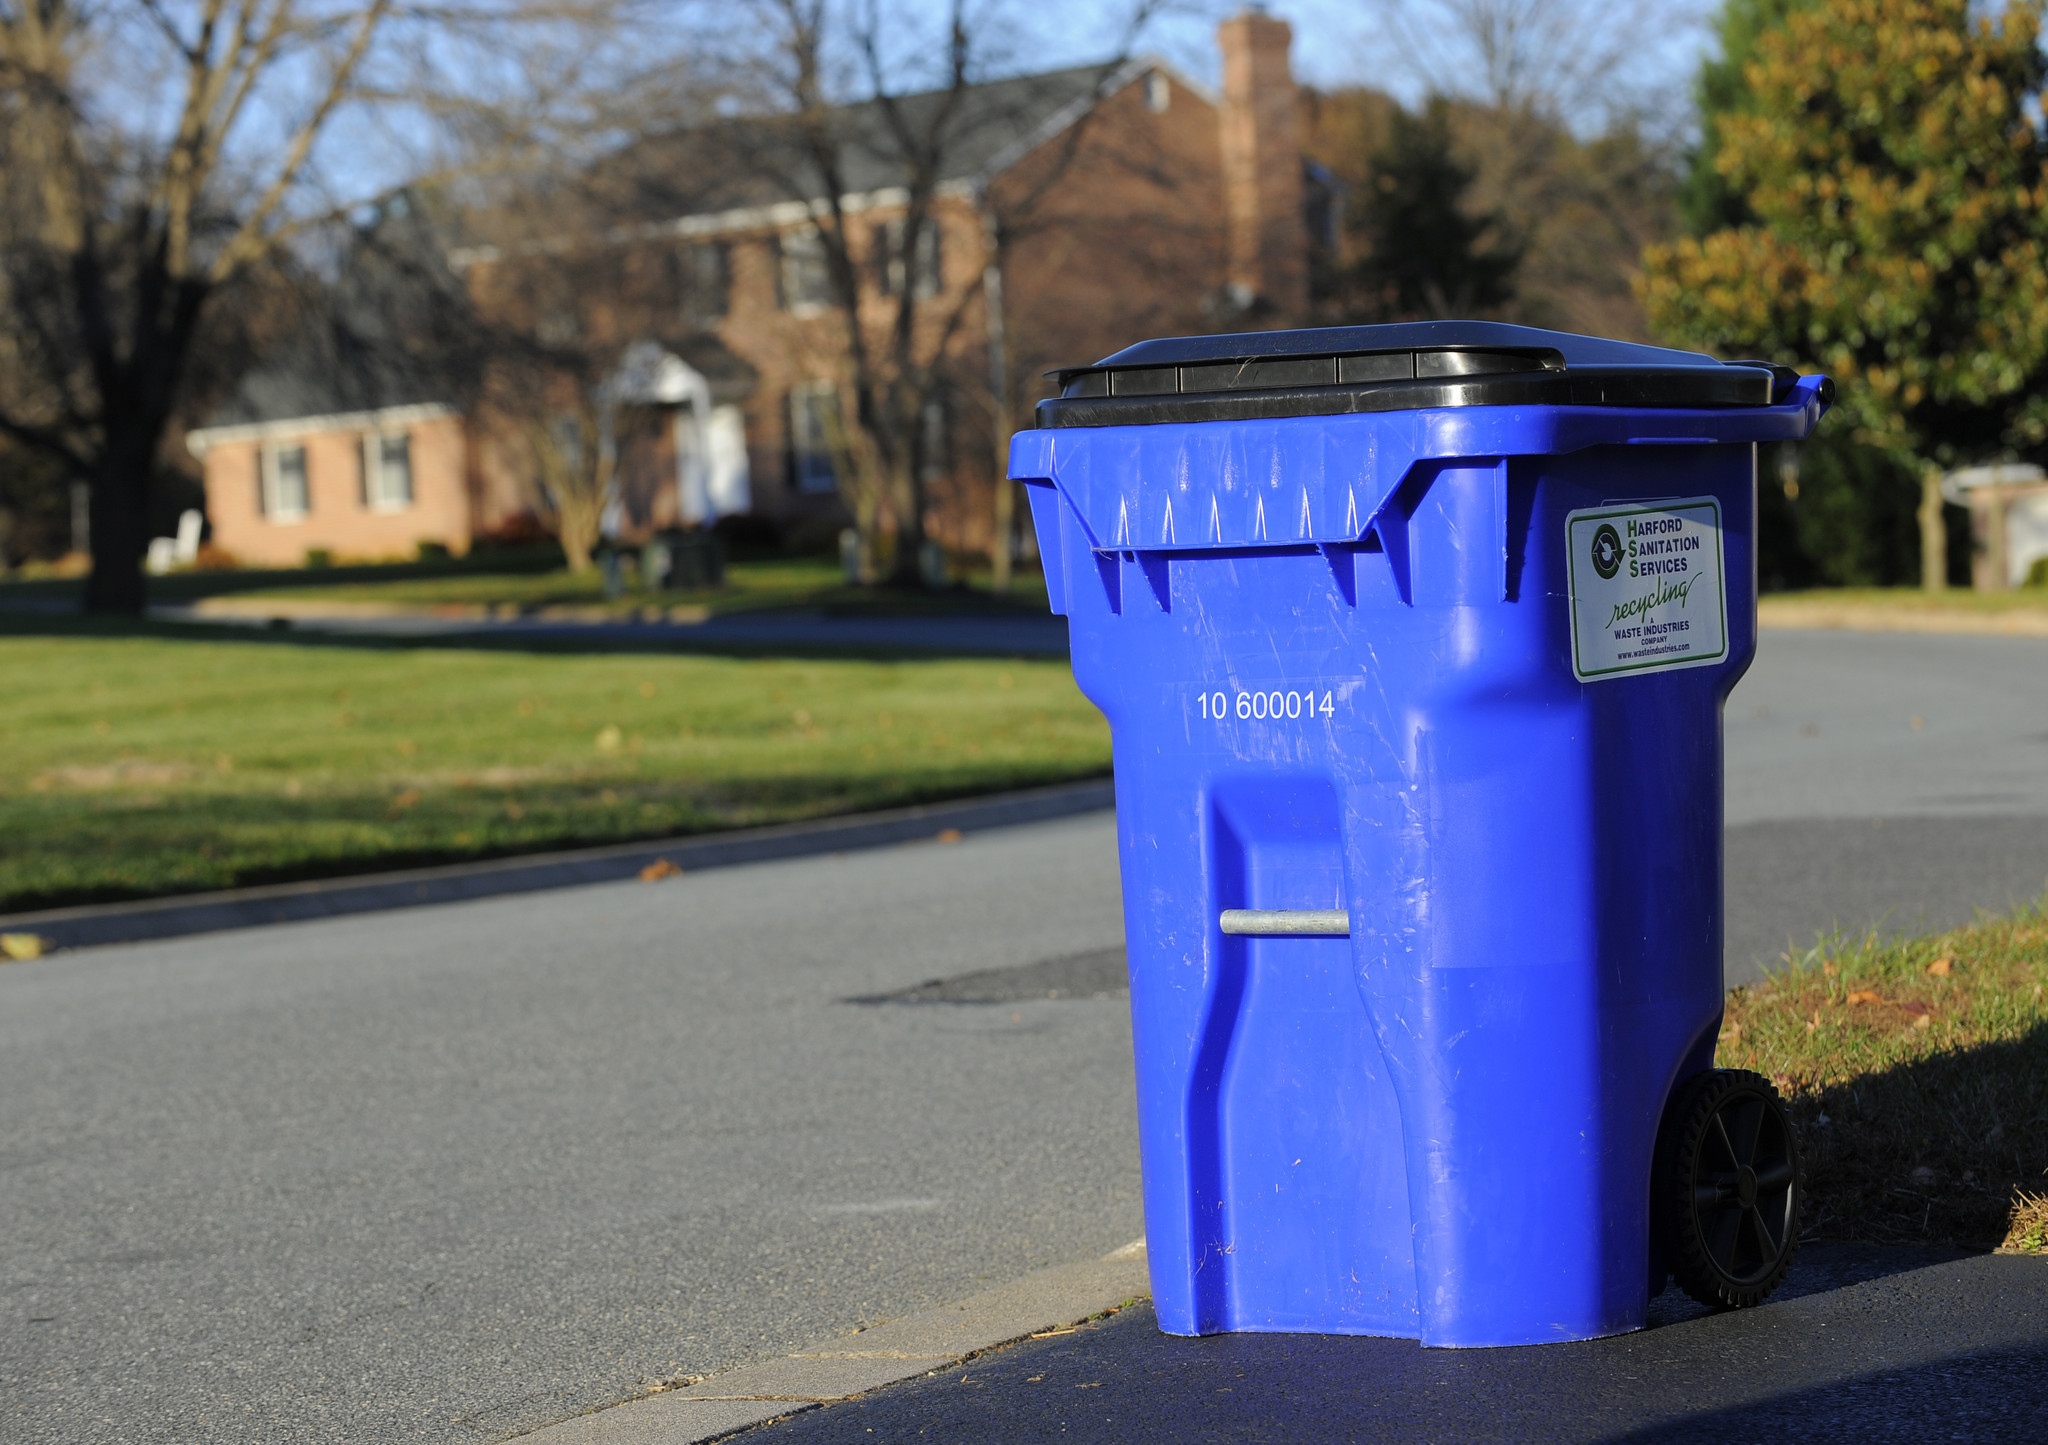 Car Tracking Device >> Baltimore to buy trash cans for all households for rat control - Baltimore Sun